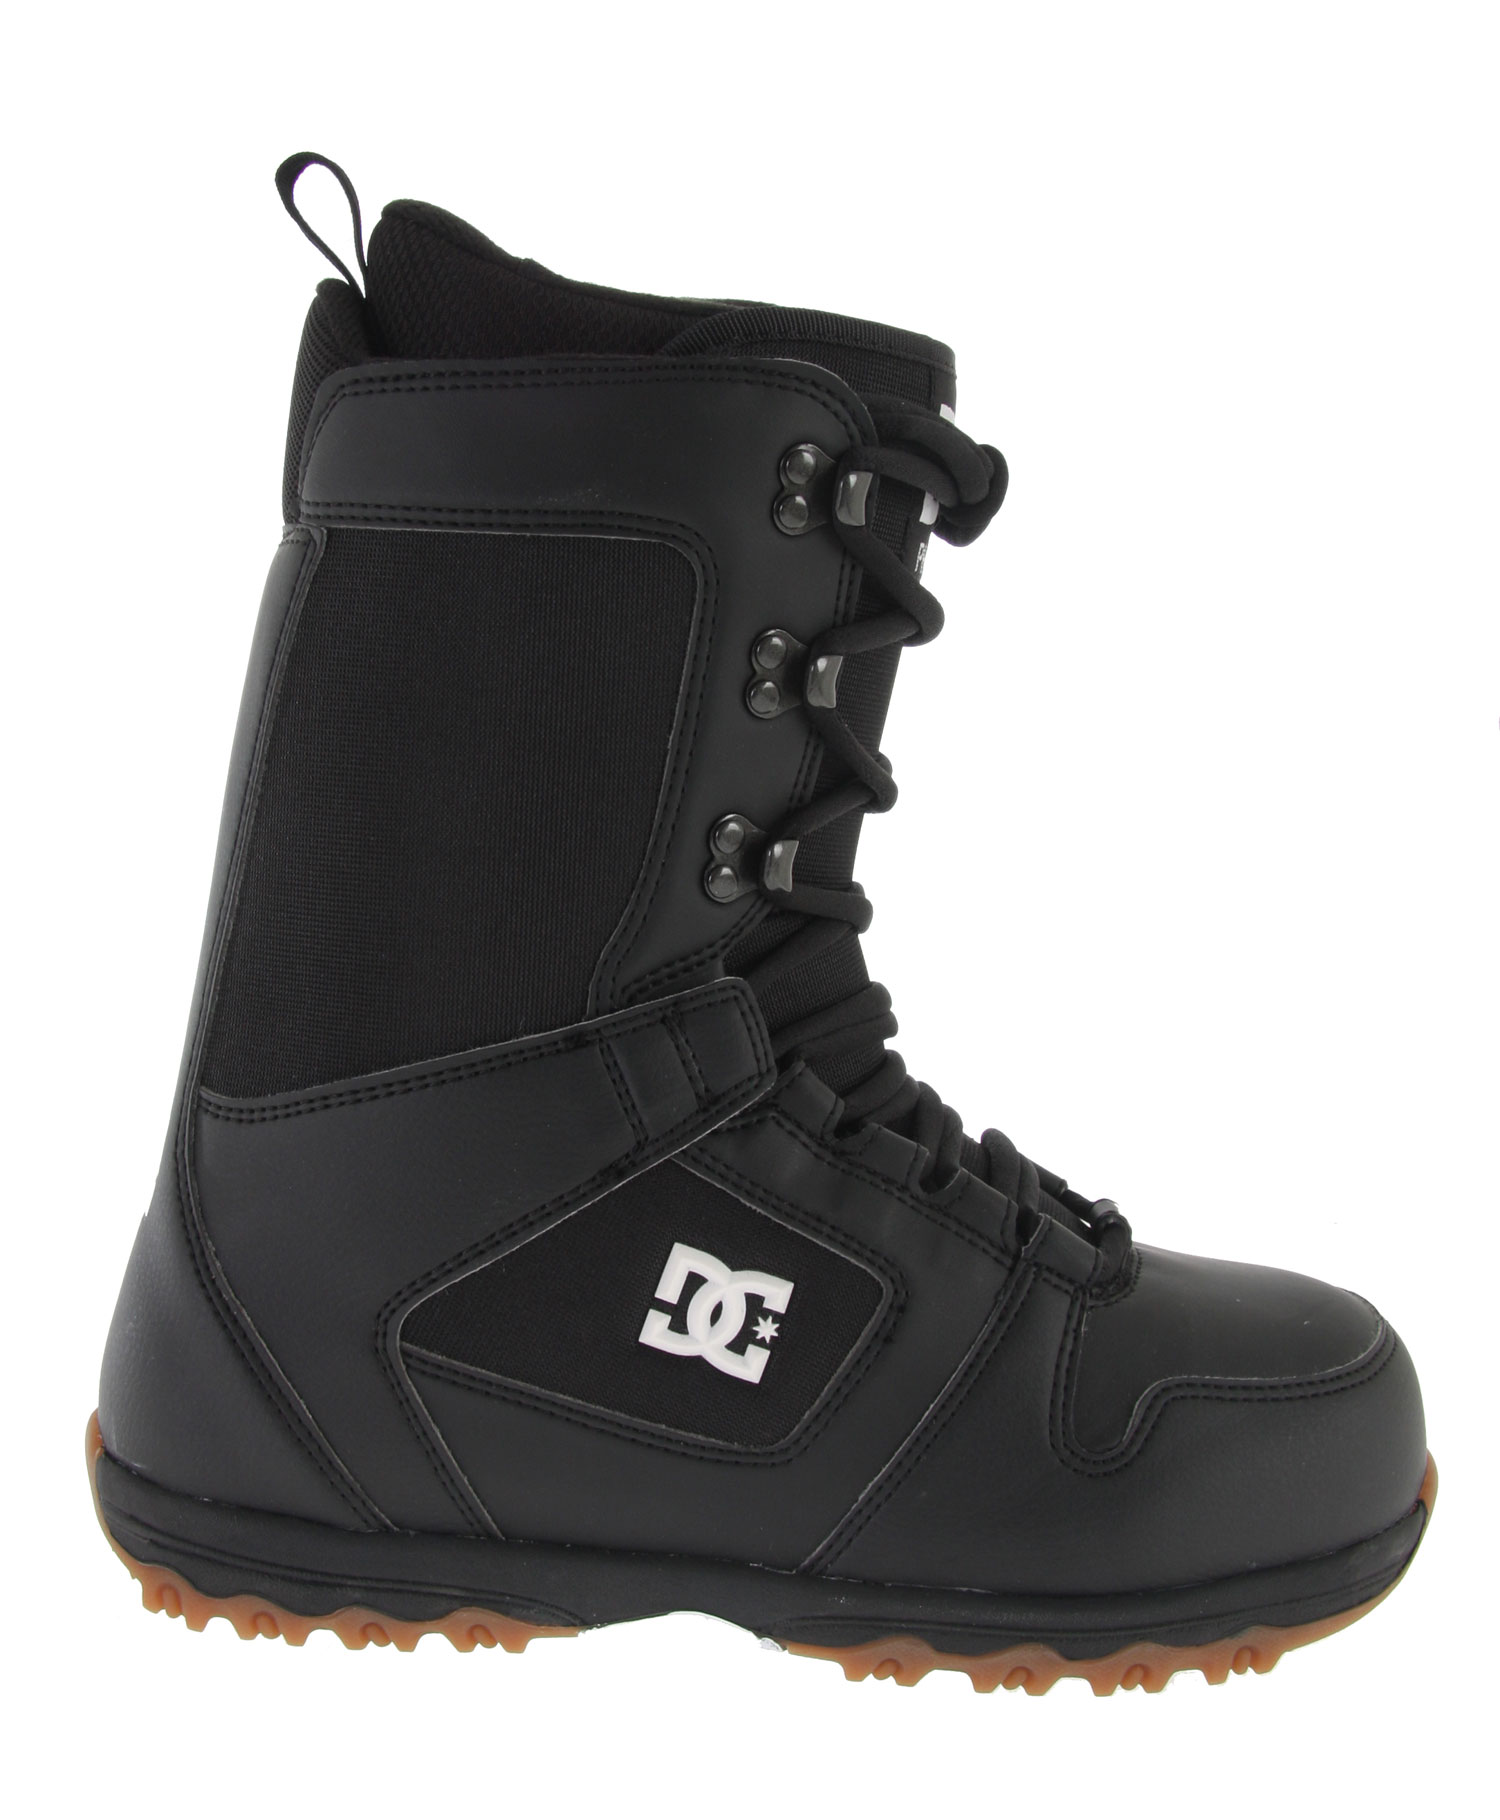 Snowboard If you are looking for a versatile all-mountain boot then the DC Phase Snowboard Boot is the one for you.  Manufactured with only the best materials to provide a water-resistant, comfortable and smooth ride.  Uniquely styled it has become extremely popular for our performance oriented customers and comes at a great price.Key Features of the DC Phase Snowboard Boots:  Synthetic Leather & PU coated mesh  Traditional Lace  Low Profile Rubber Cupsole  Delta Liner  Flex Rating 5 - $77.95